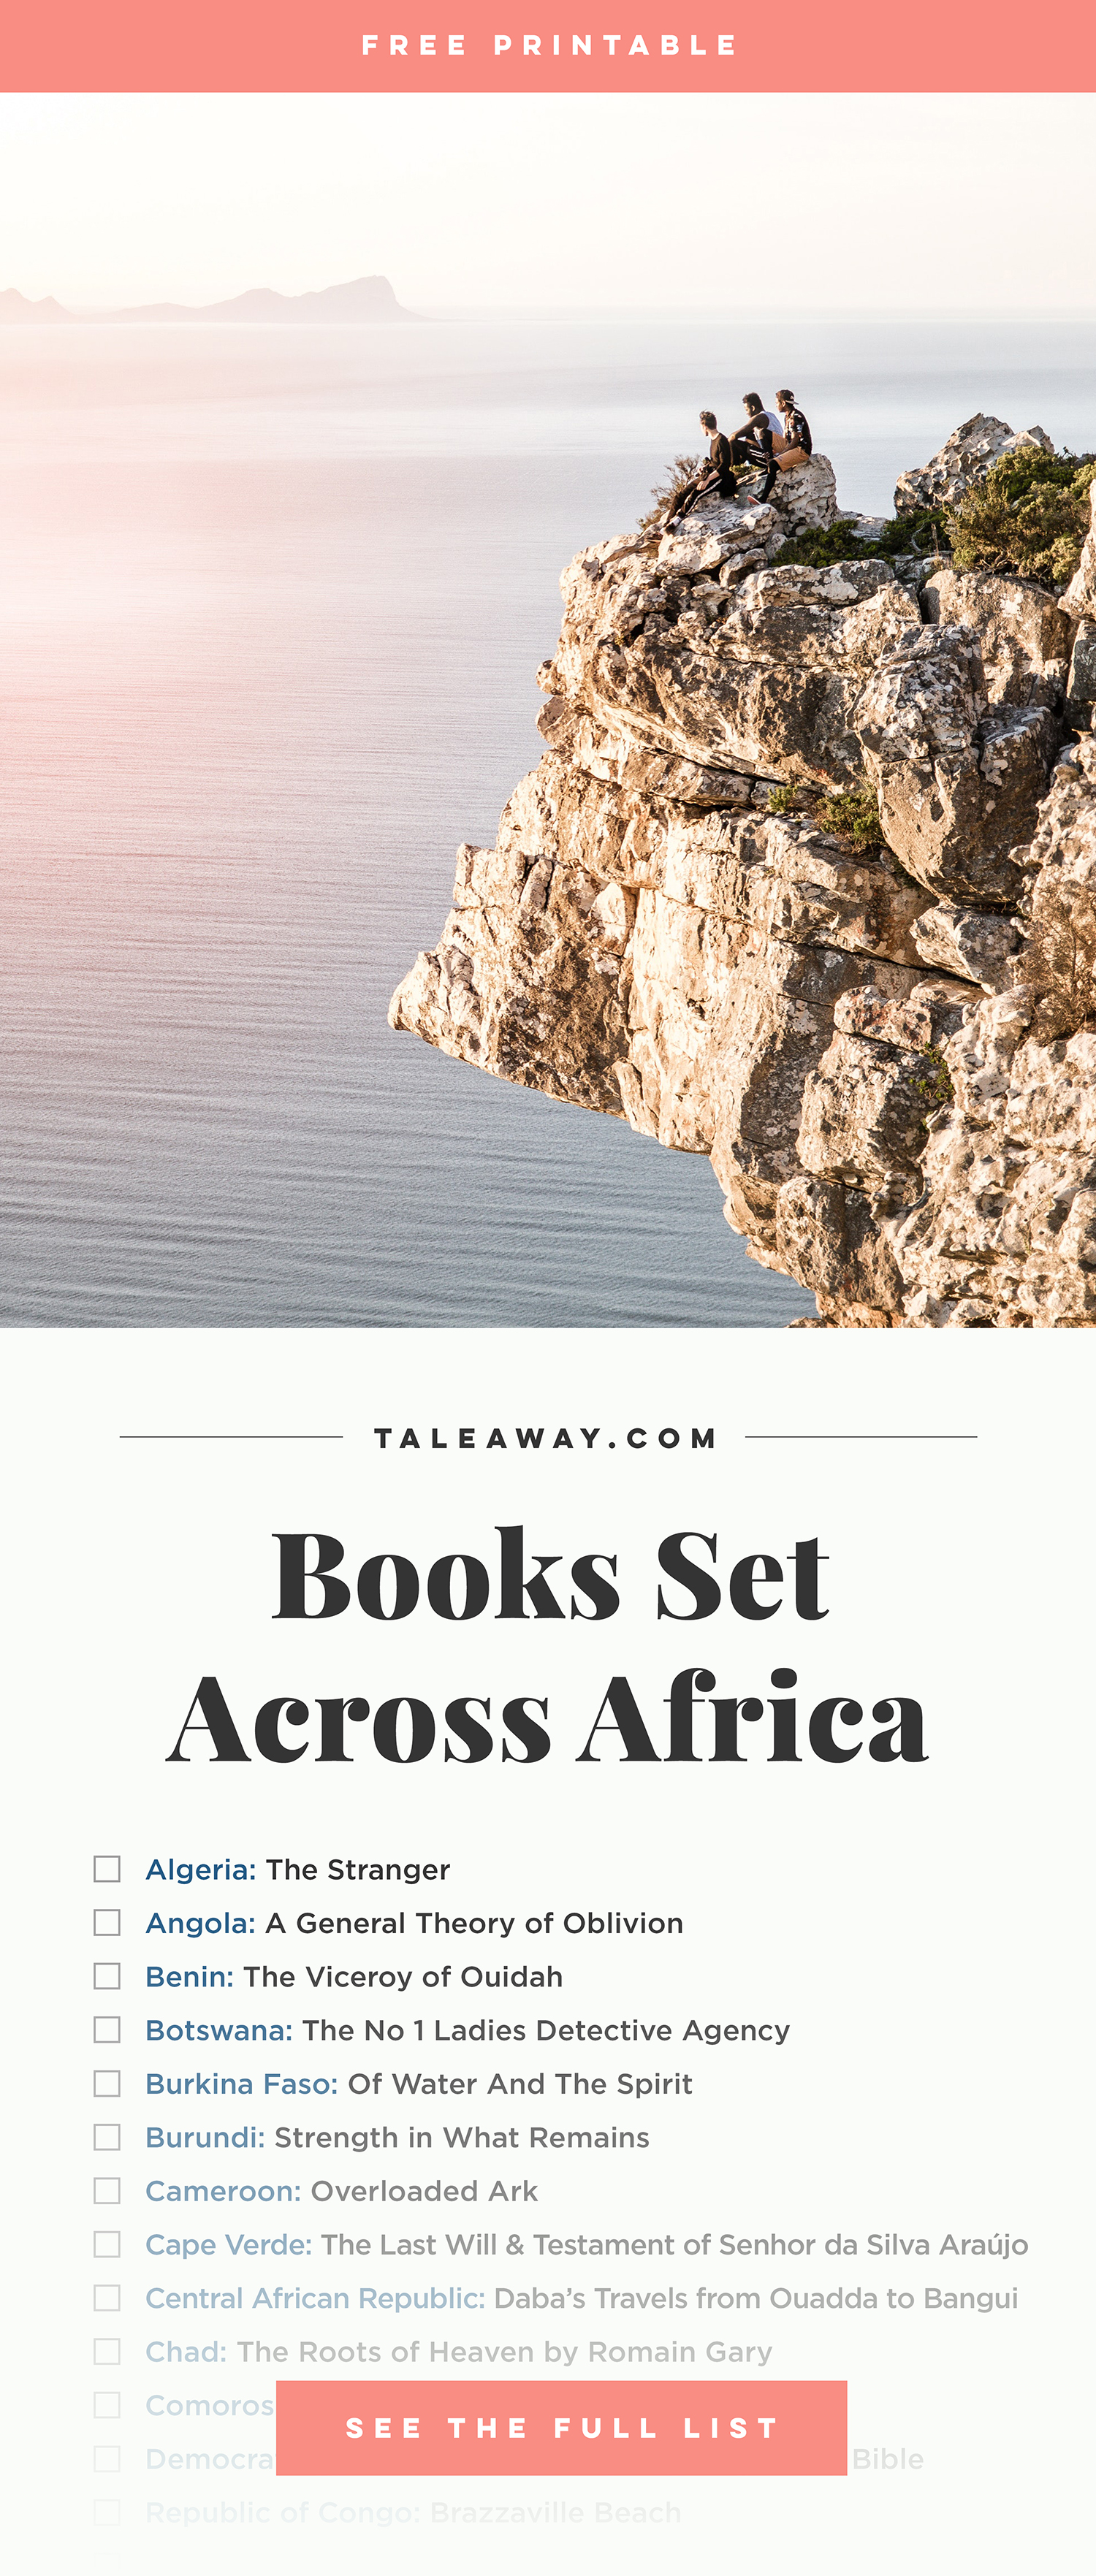 Books Set In Africa - Visit www.taleway.com to find books set around the world. africa books, african books, books african authors, africa novels, africa literature, africa culture, africa travel, africa book cover, africa reading challenge, african books to read, africa reading list, africa travel, best african books, books by african authors, books for travel lovers, travel reads, travel reading list, reading list, reading challenge, books around the world